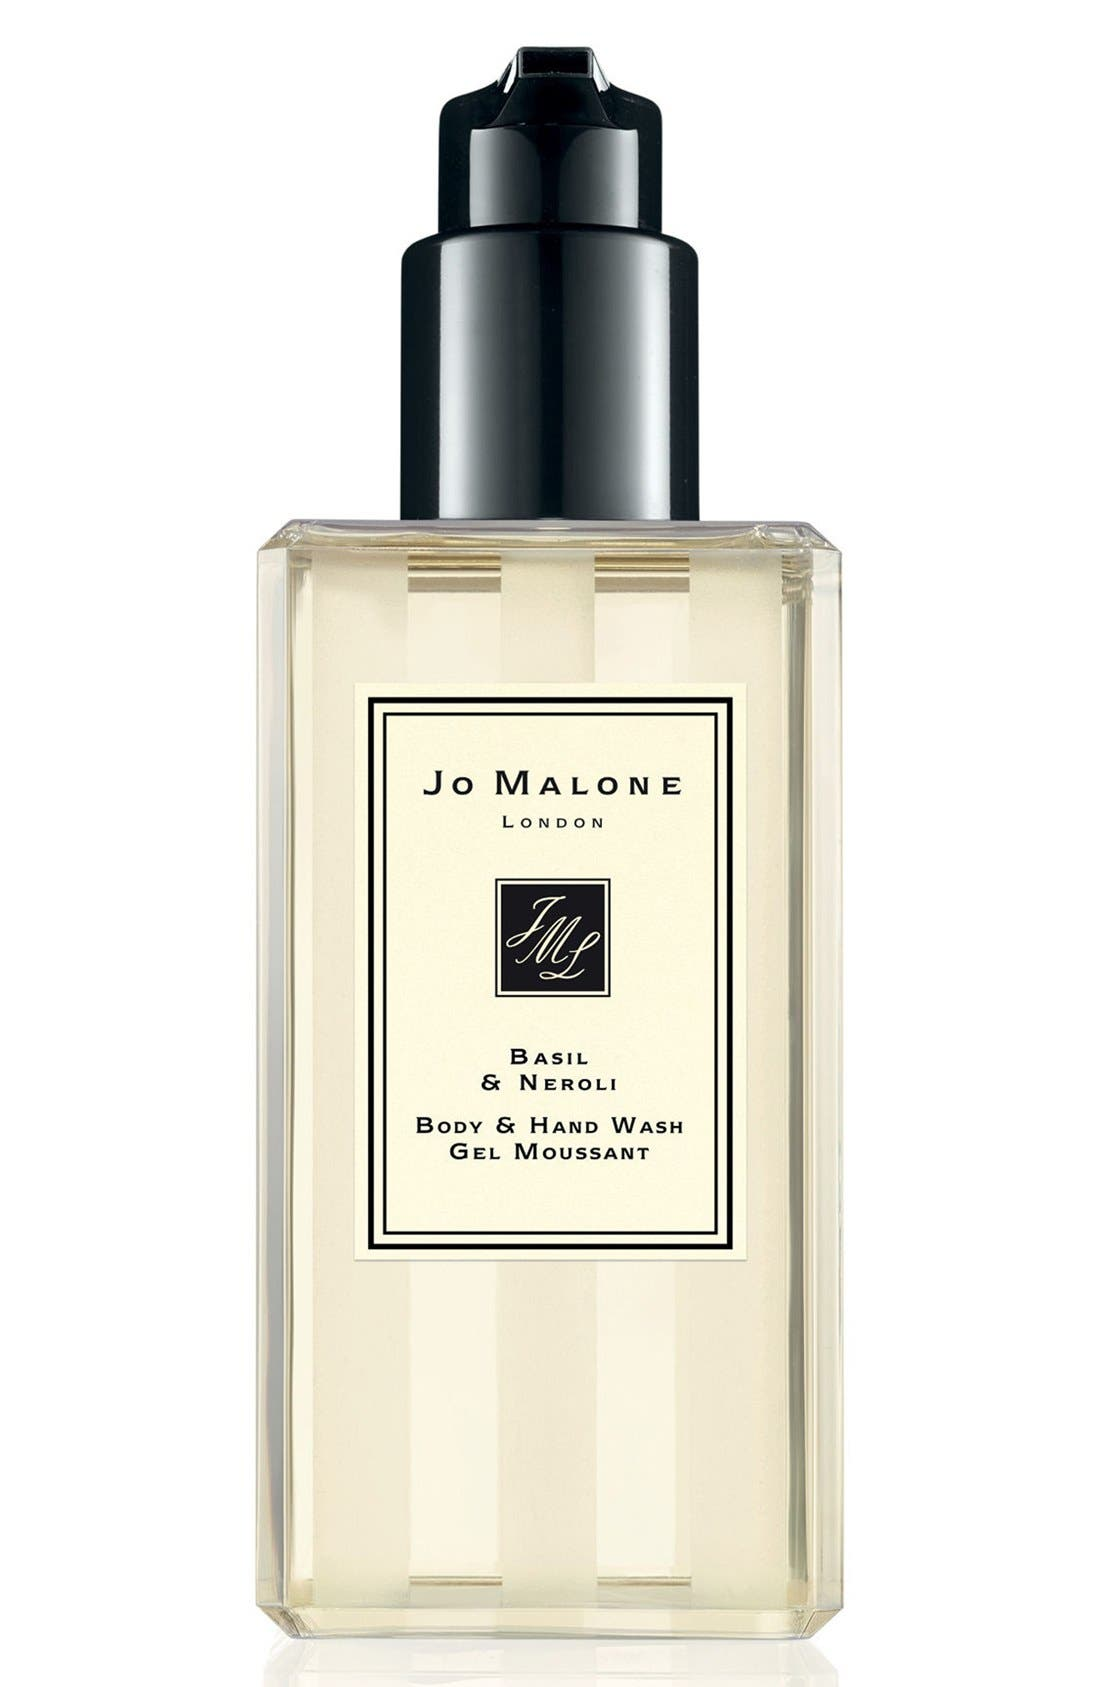 Jo Malone London™ 'Basil & Neroli' Body & Hand Wash